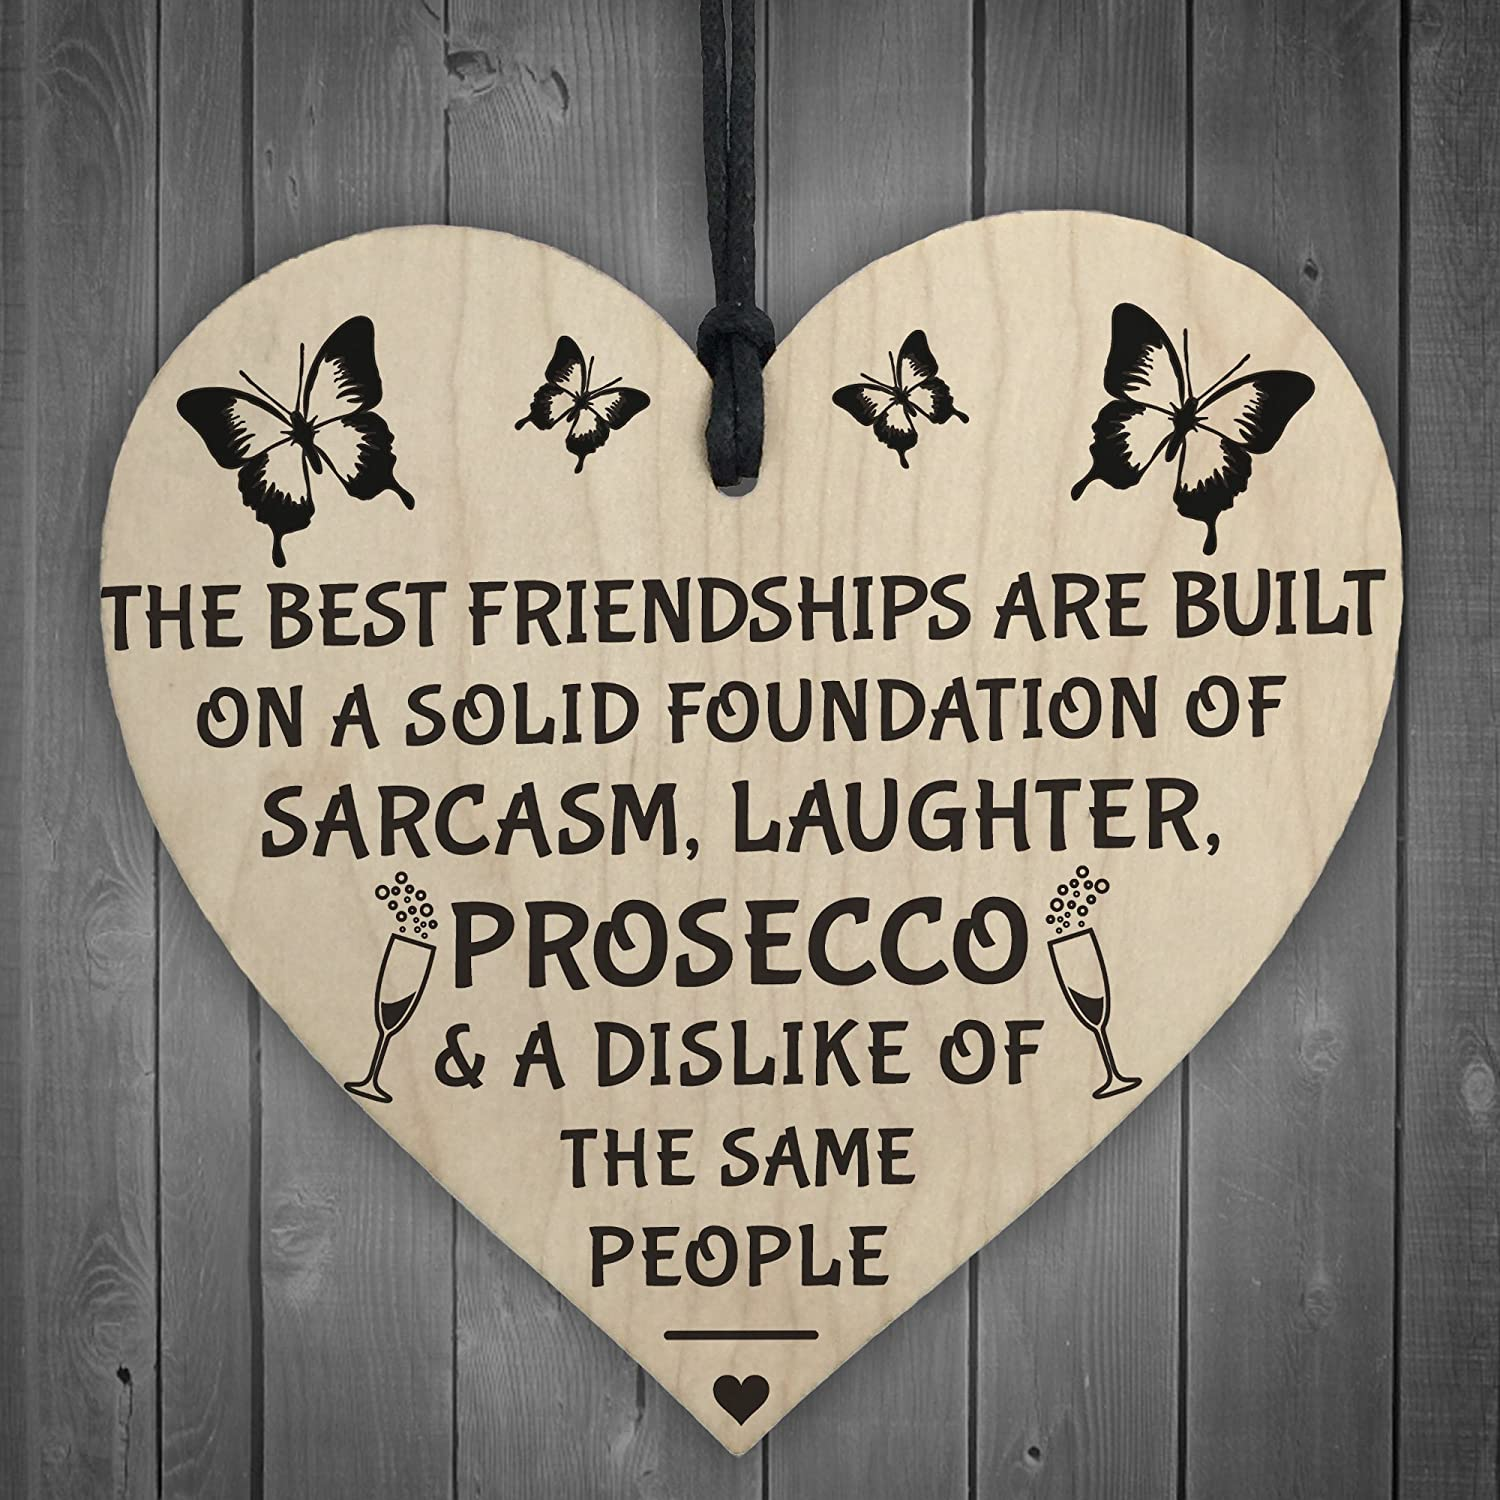 Red Ocean Best Friendships Foundation Is Prosecco Wooden Hanging Heart Alcohol Joke Sign Novelty Plaque Gift RO-2723